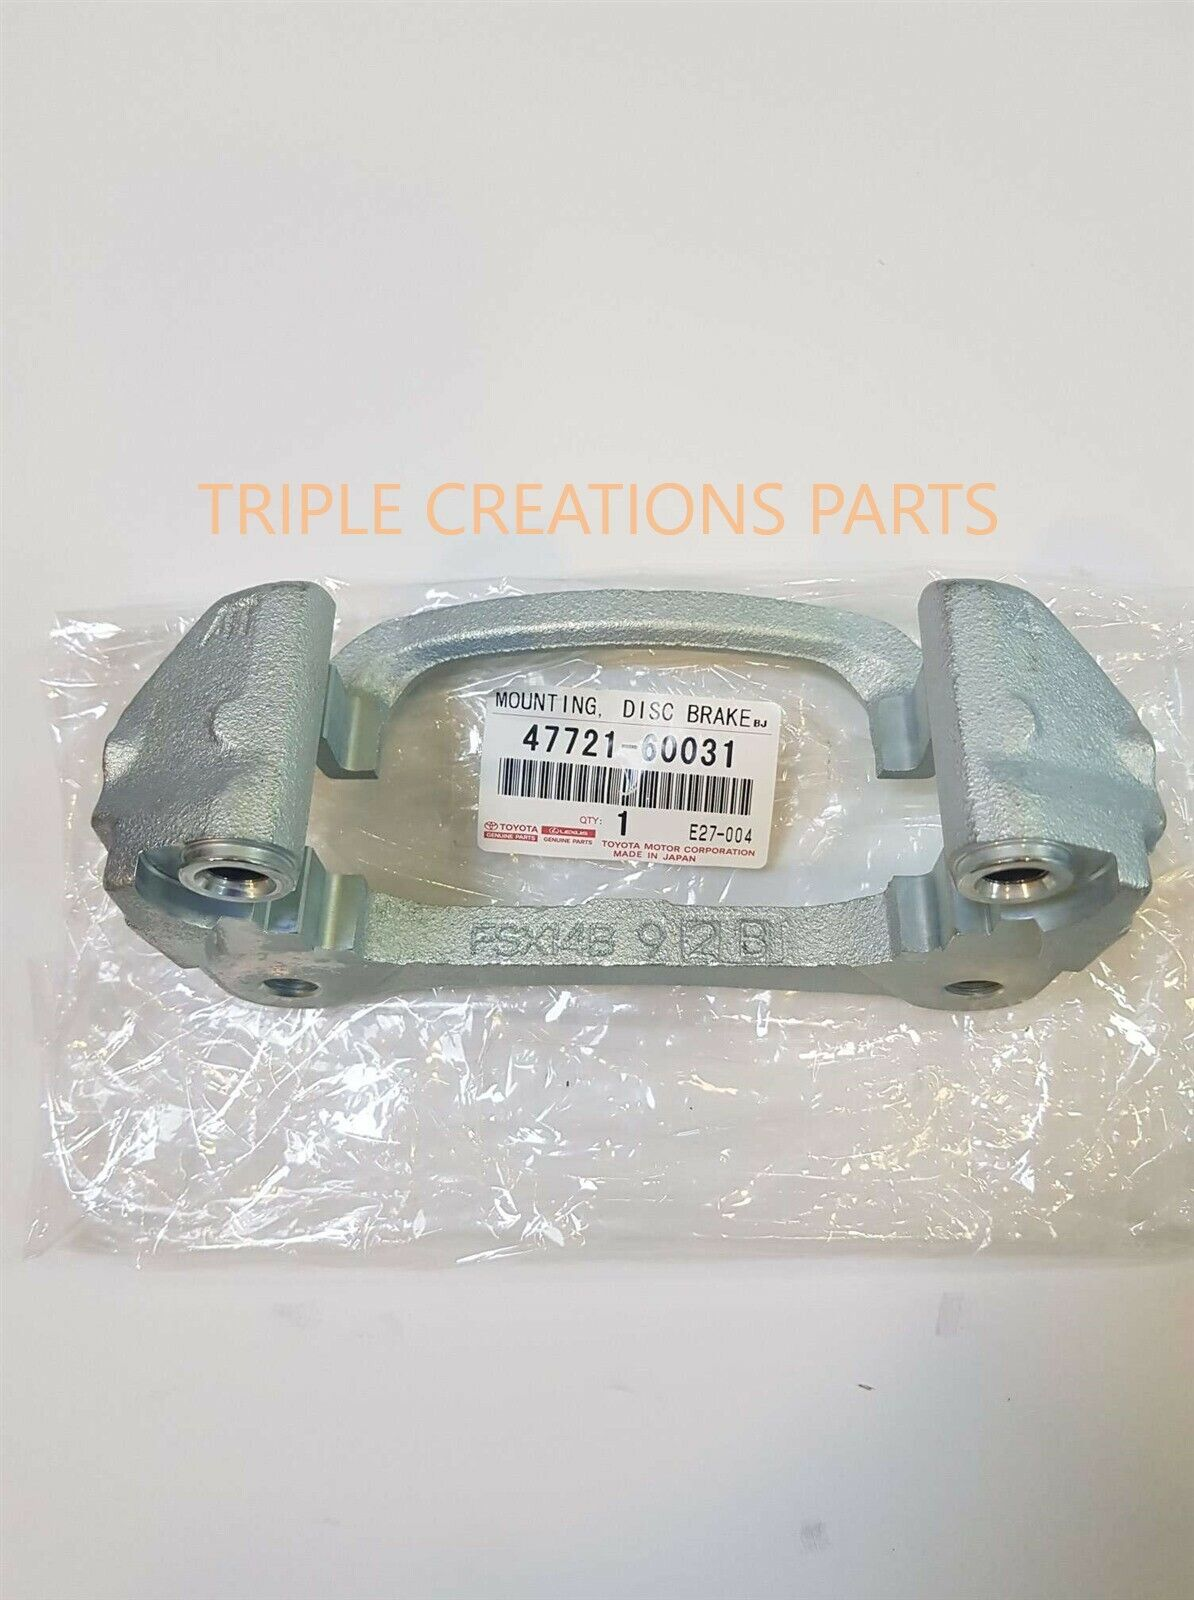 RH//LH 47721-60031 REAR DISC BRAKE CYLINDER 4772160031 Genuine Toyota MOUNTING